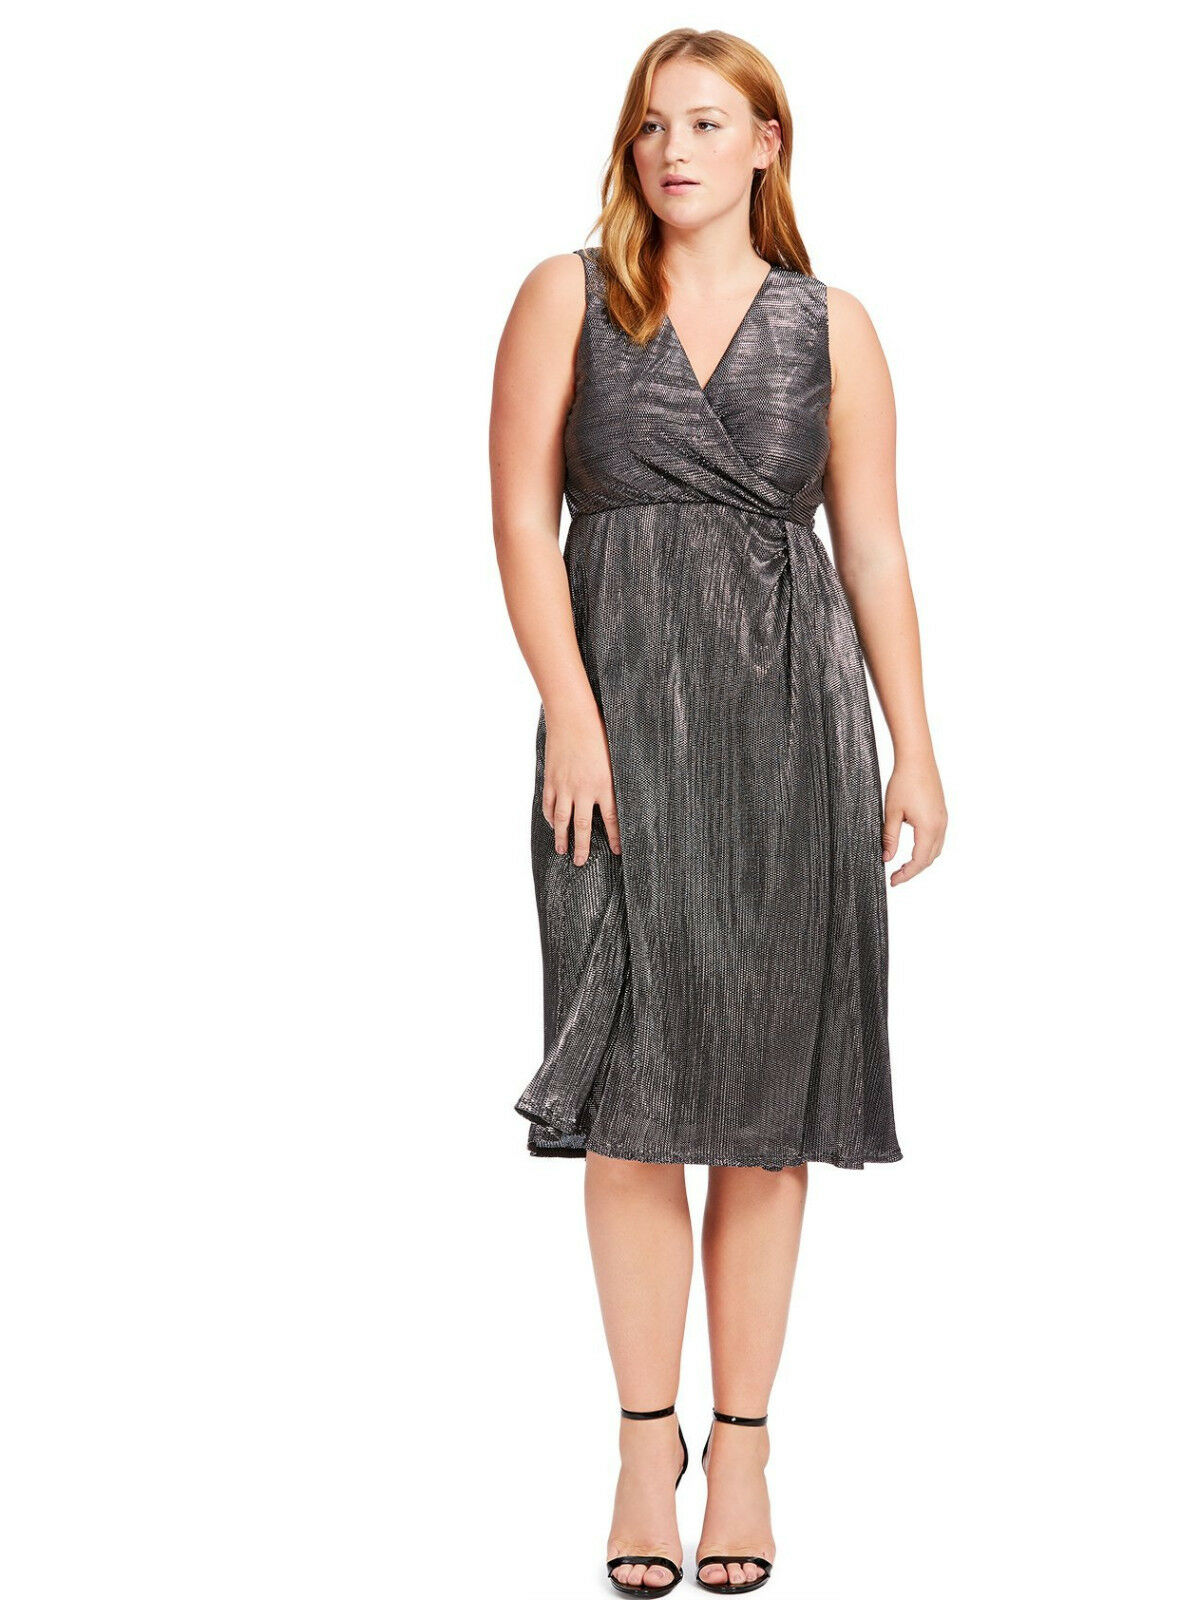 NEW LANE BRYANT SPOTLIGHT CINCH DRESS BY KIYONNA SZ 1X